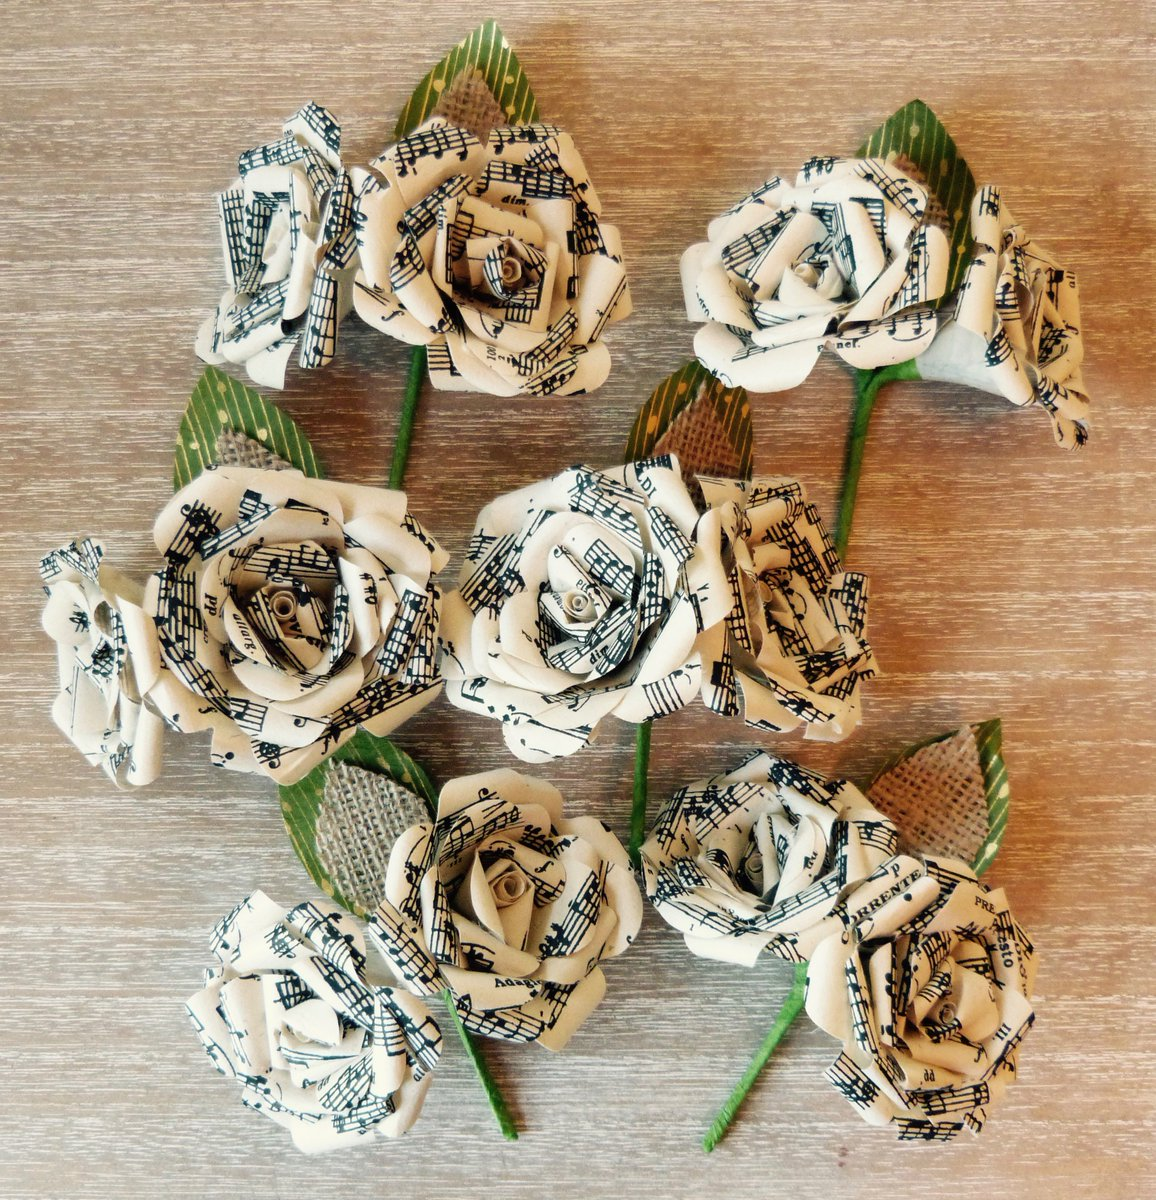 Paper meadow on twitter music note buttonholes papermeadow paper meadow on twitter music note buttonholes papermeadow paperflowers flowers wedding buttonhole boutonniere music musicnotes art mightylinksfo